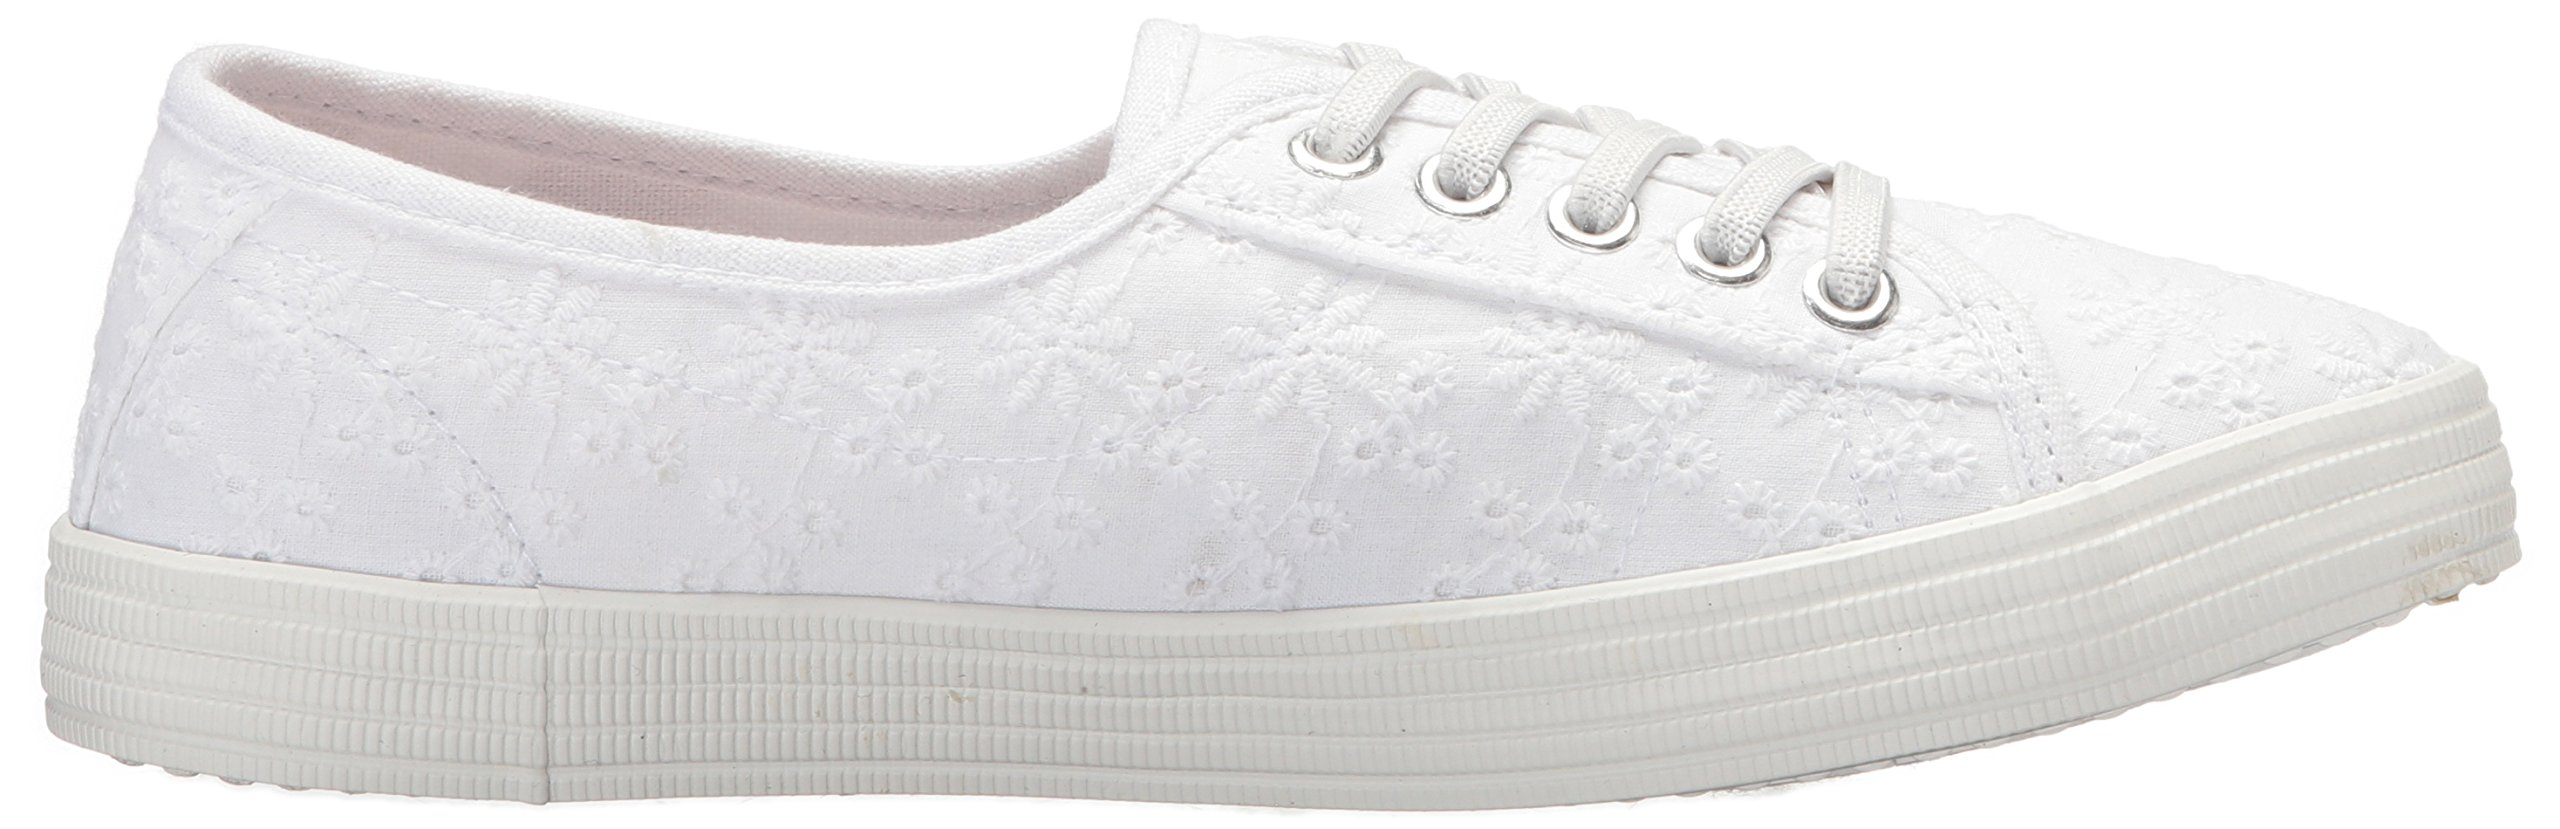 Rocket Dog Women's Chowchow Lucky Eyelet Cotton Sneaker, White, 9.5 Medium US by Rocket Dog (Image #6)